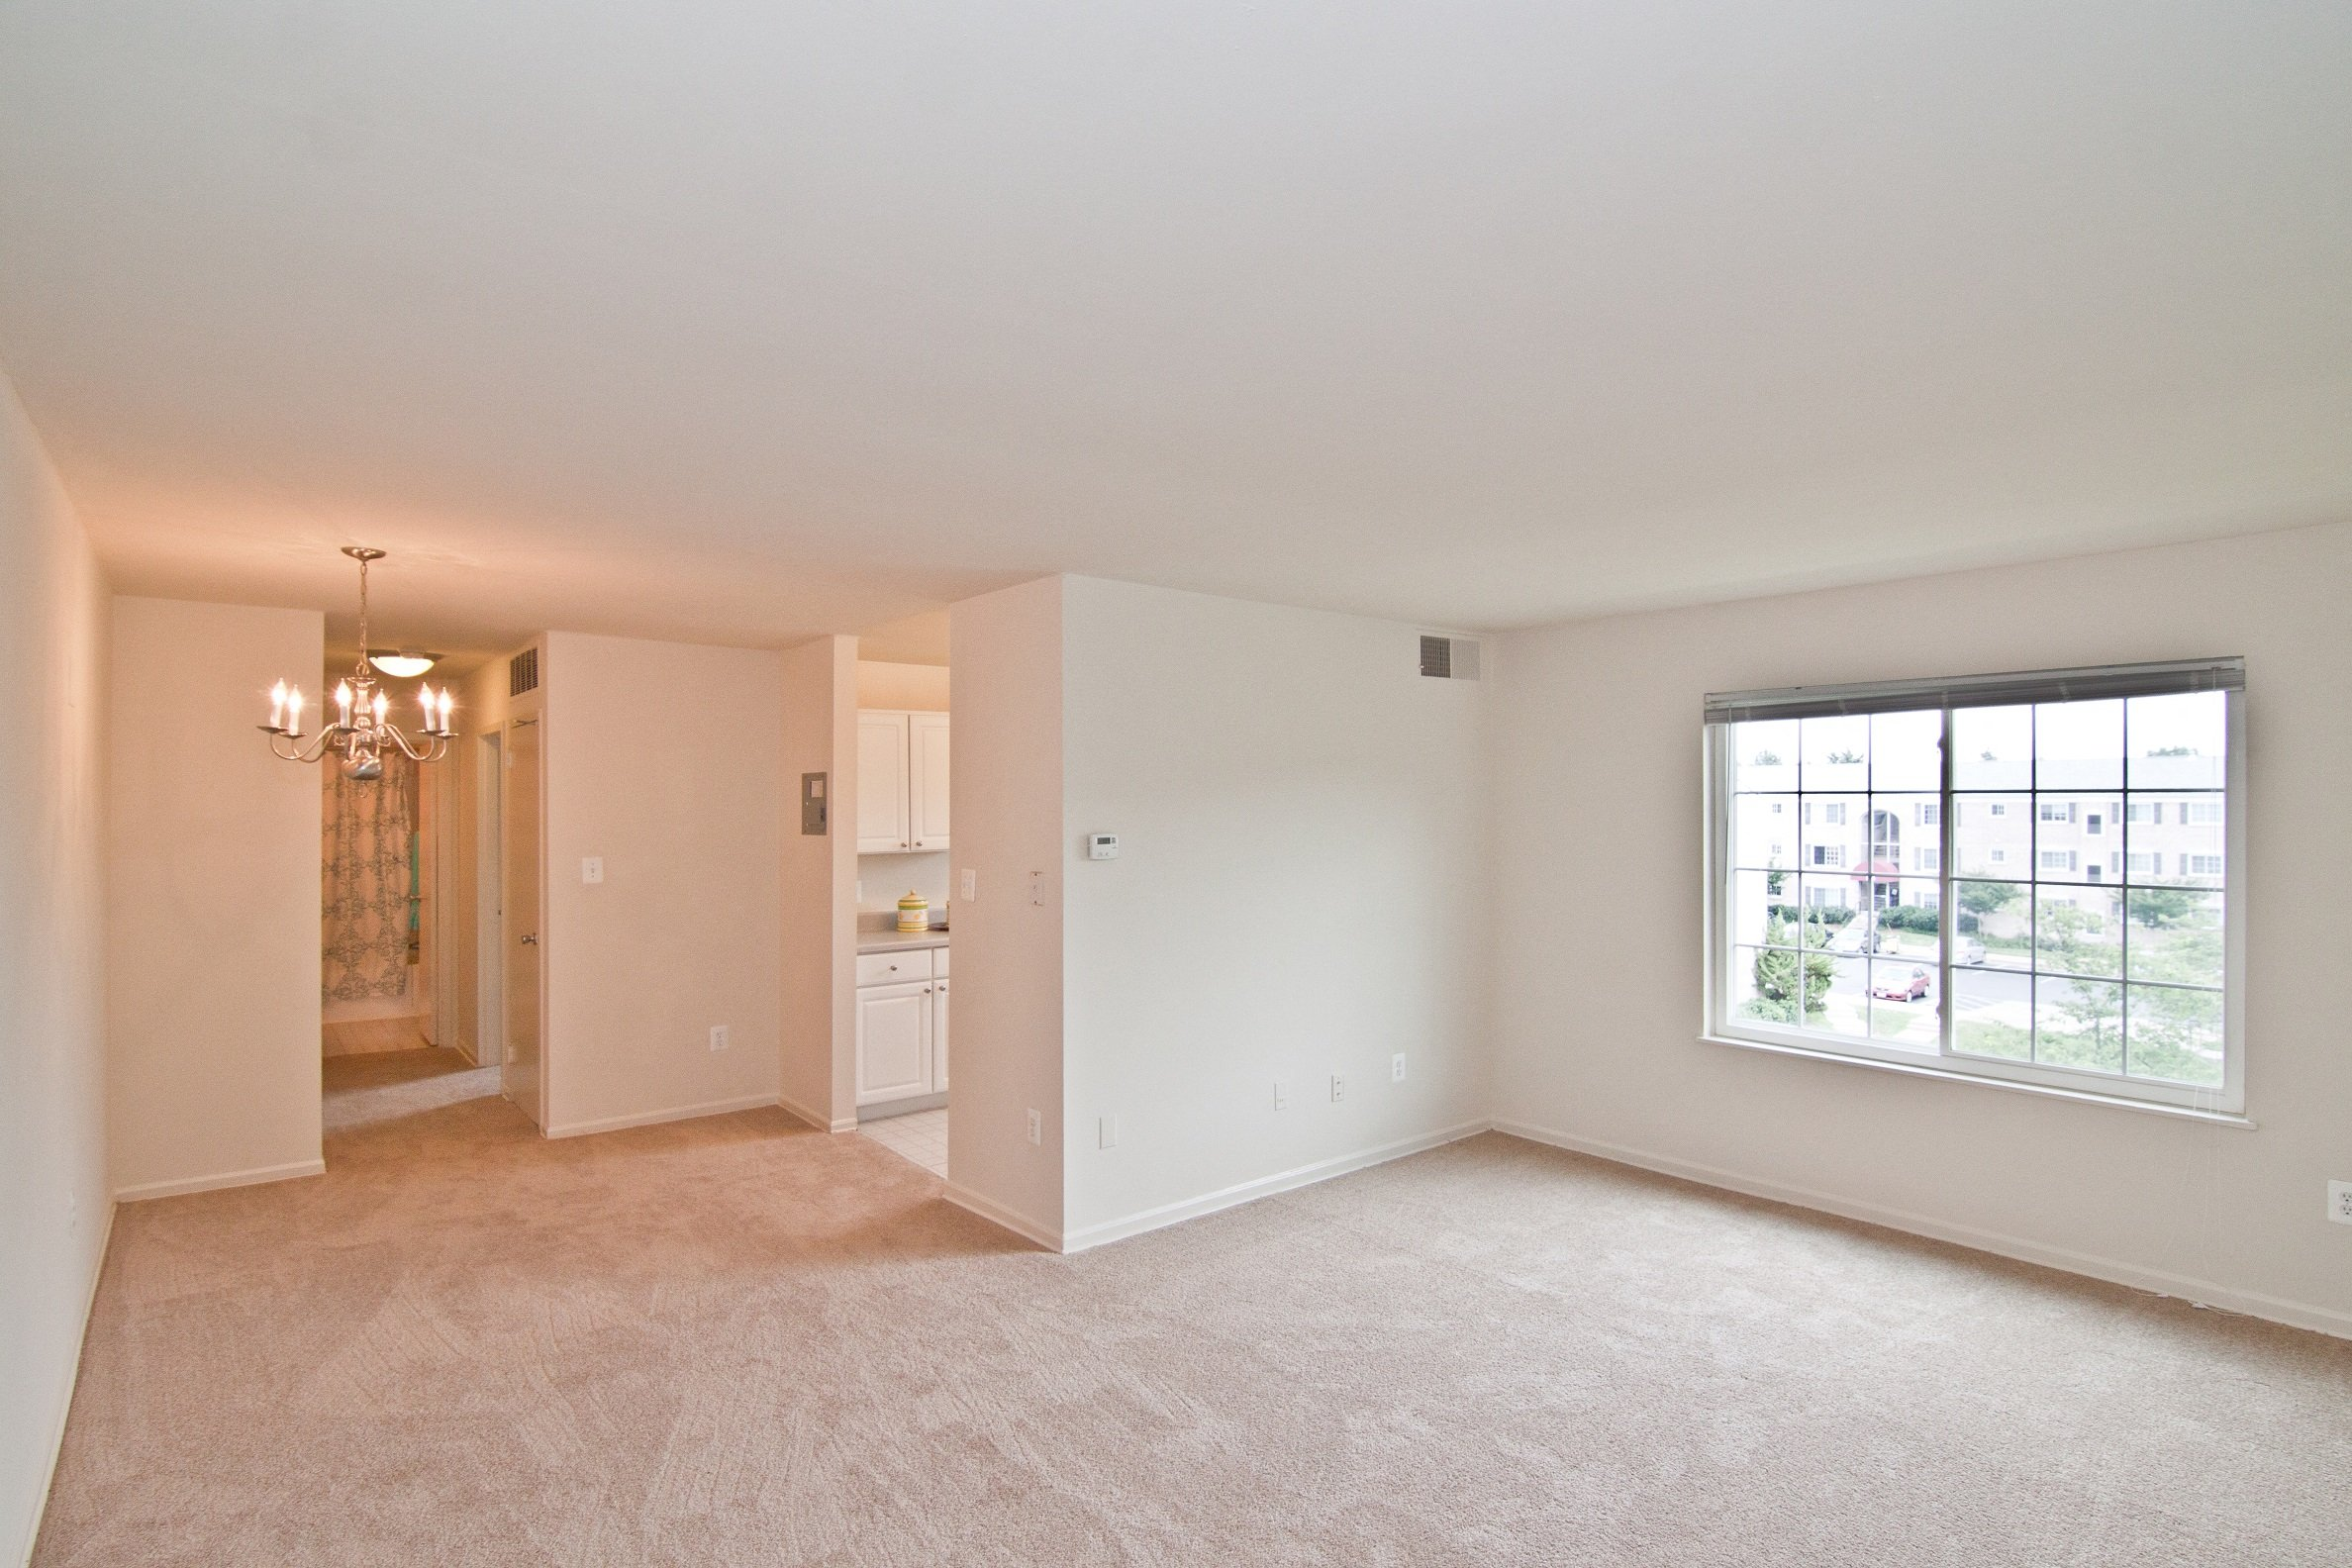 Living Space at Dulles Glen